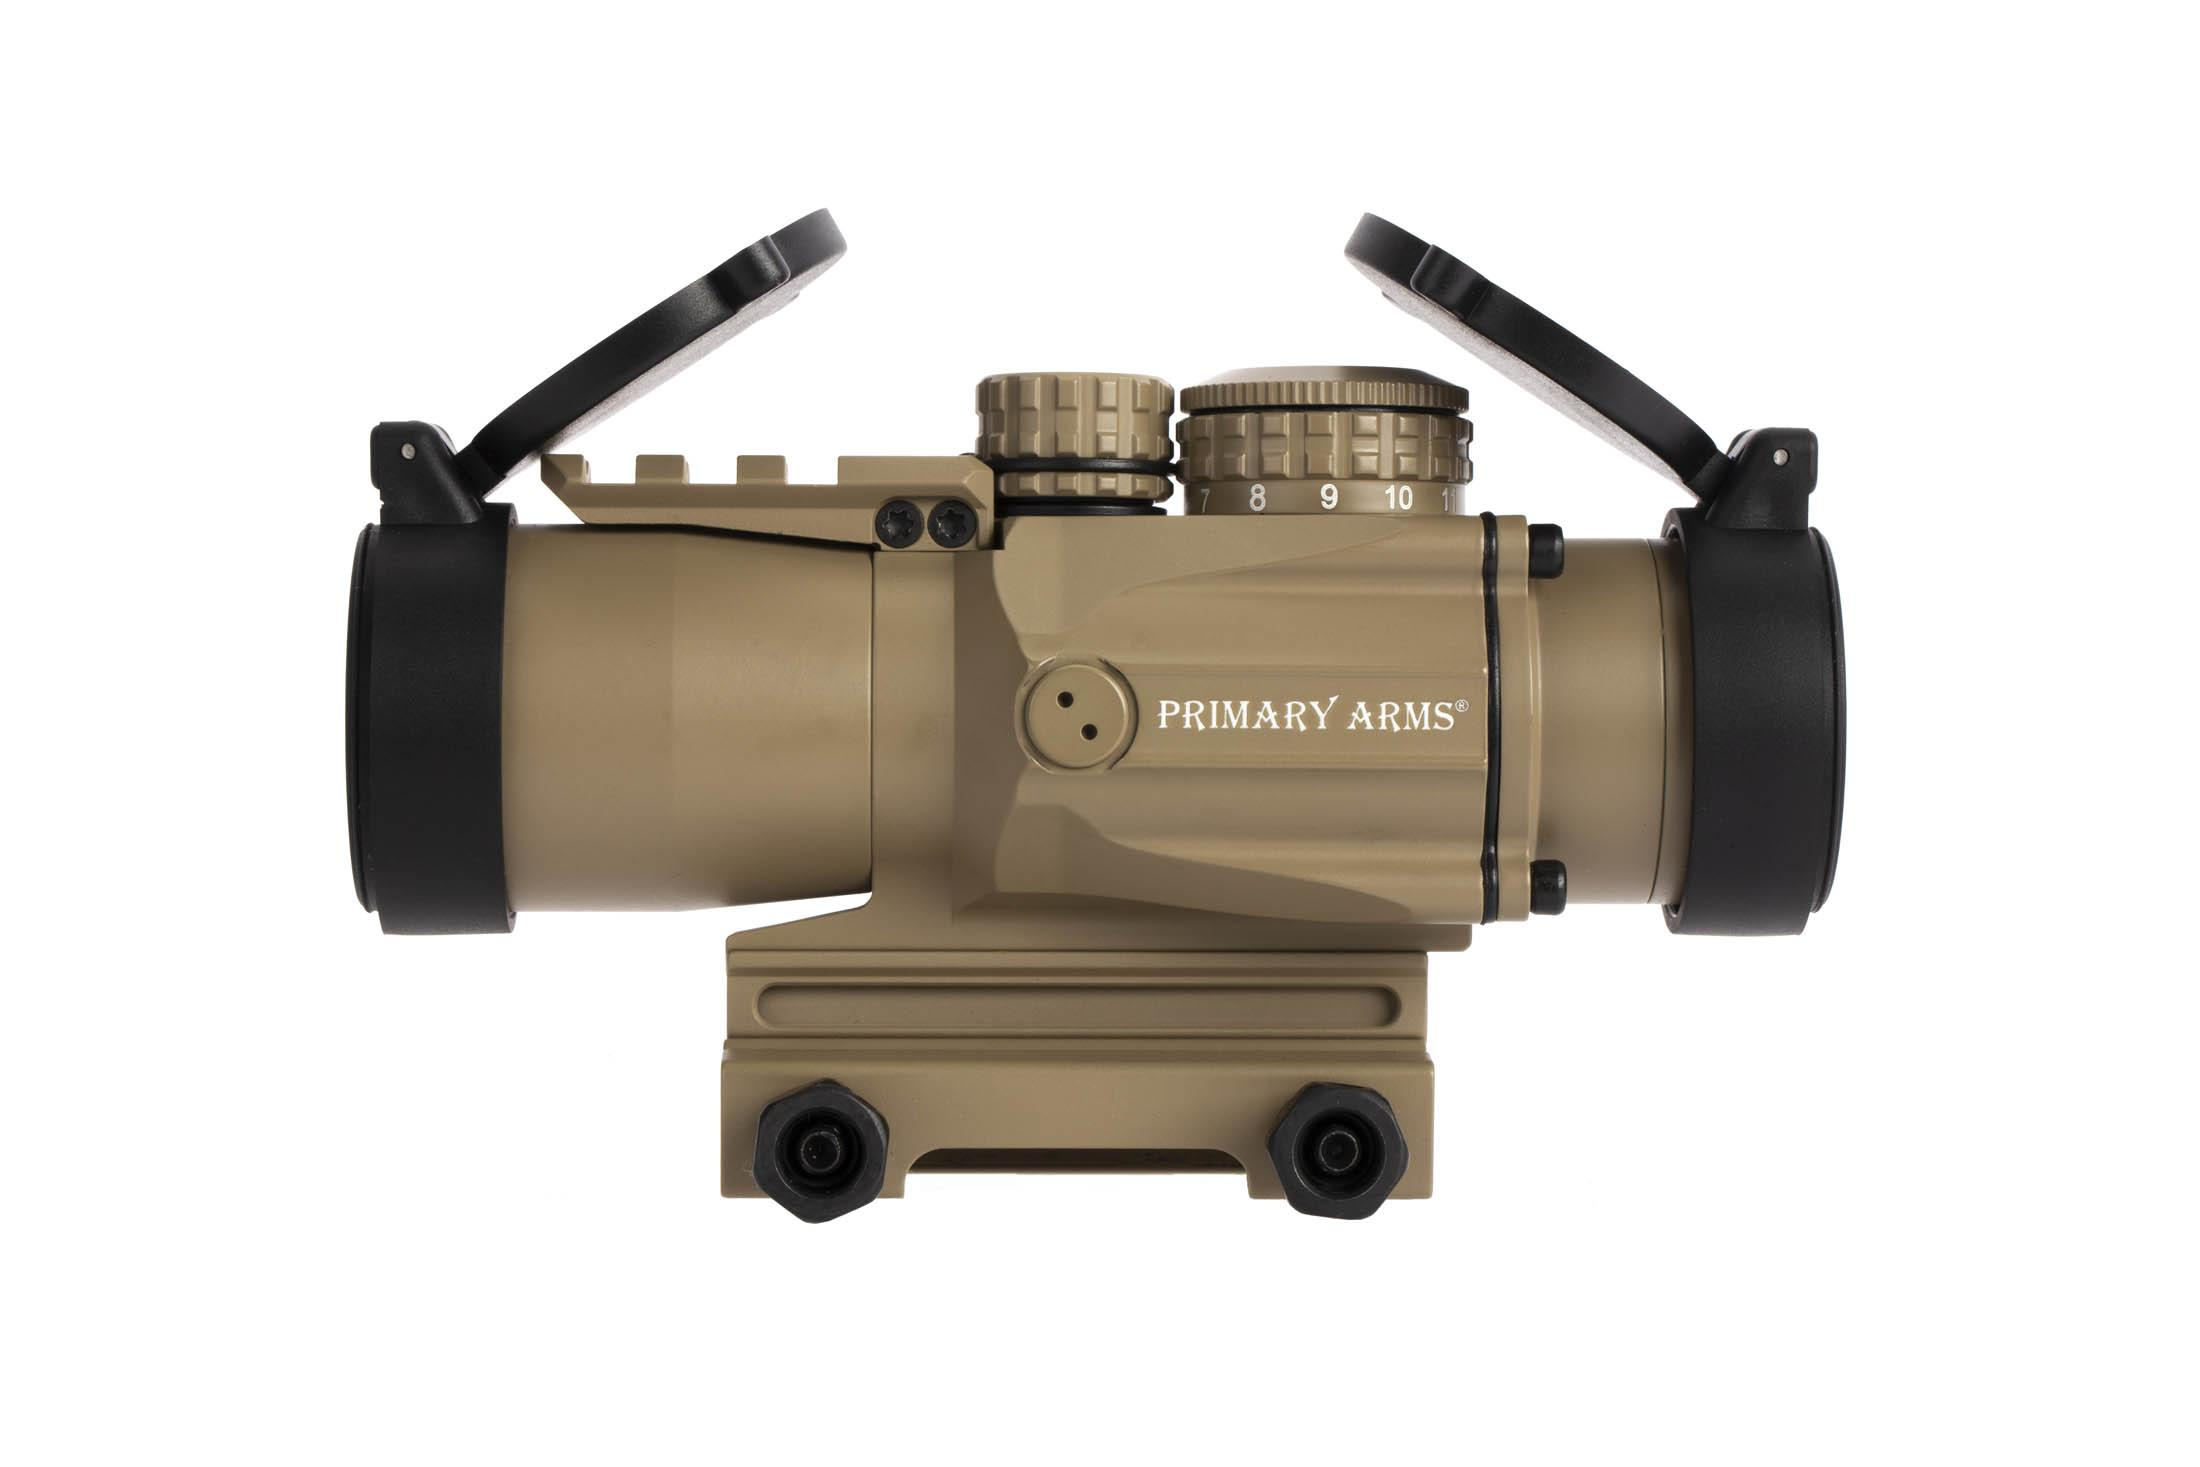 Primary Arms 2nd Generation FDE 3x Compact Prism scope with ACSS 7.62x29 / 300 BLK CQB reticle and removable mount spacer